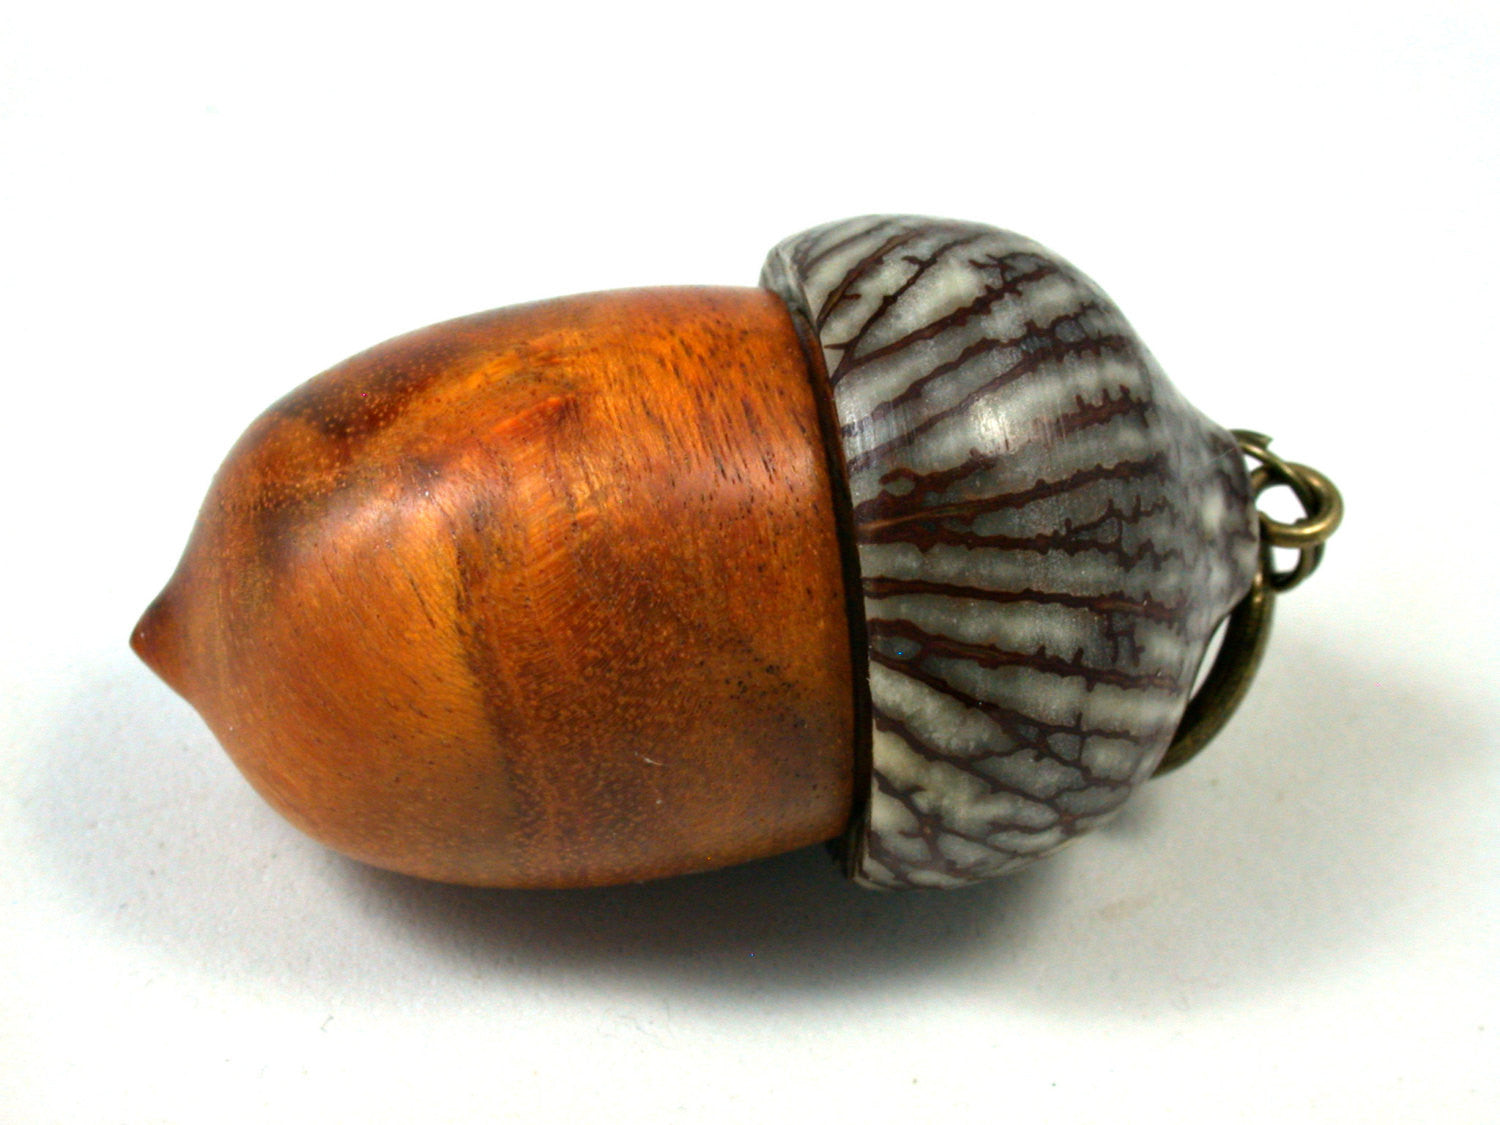 LV-1644 Sappanwood & Betelnut Acorn Key Fob, Pill Holder, Secret Compartment-SCREW CAP